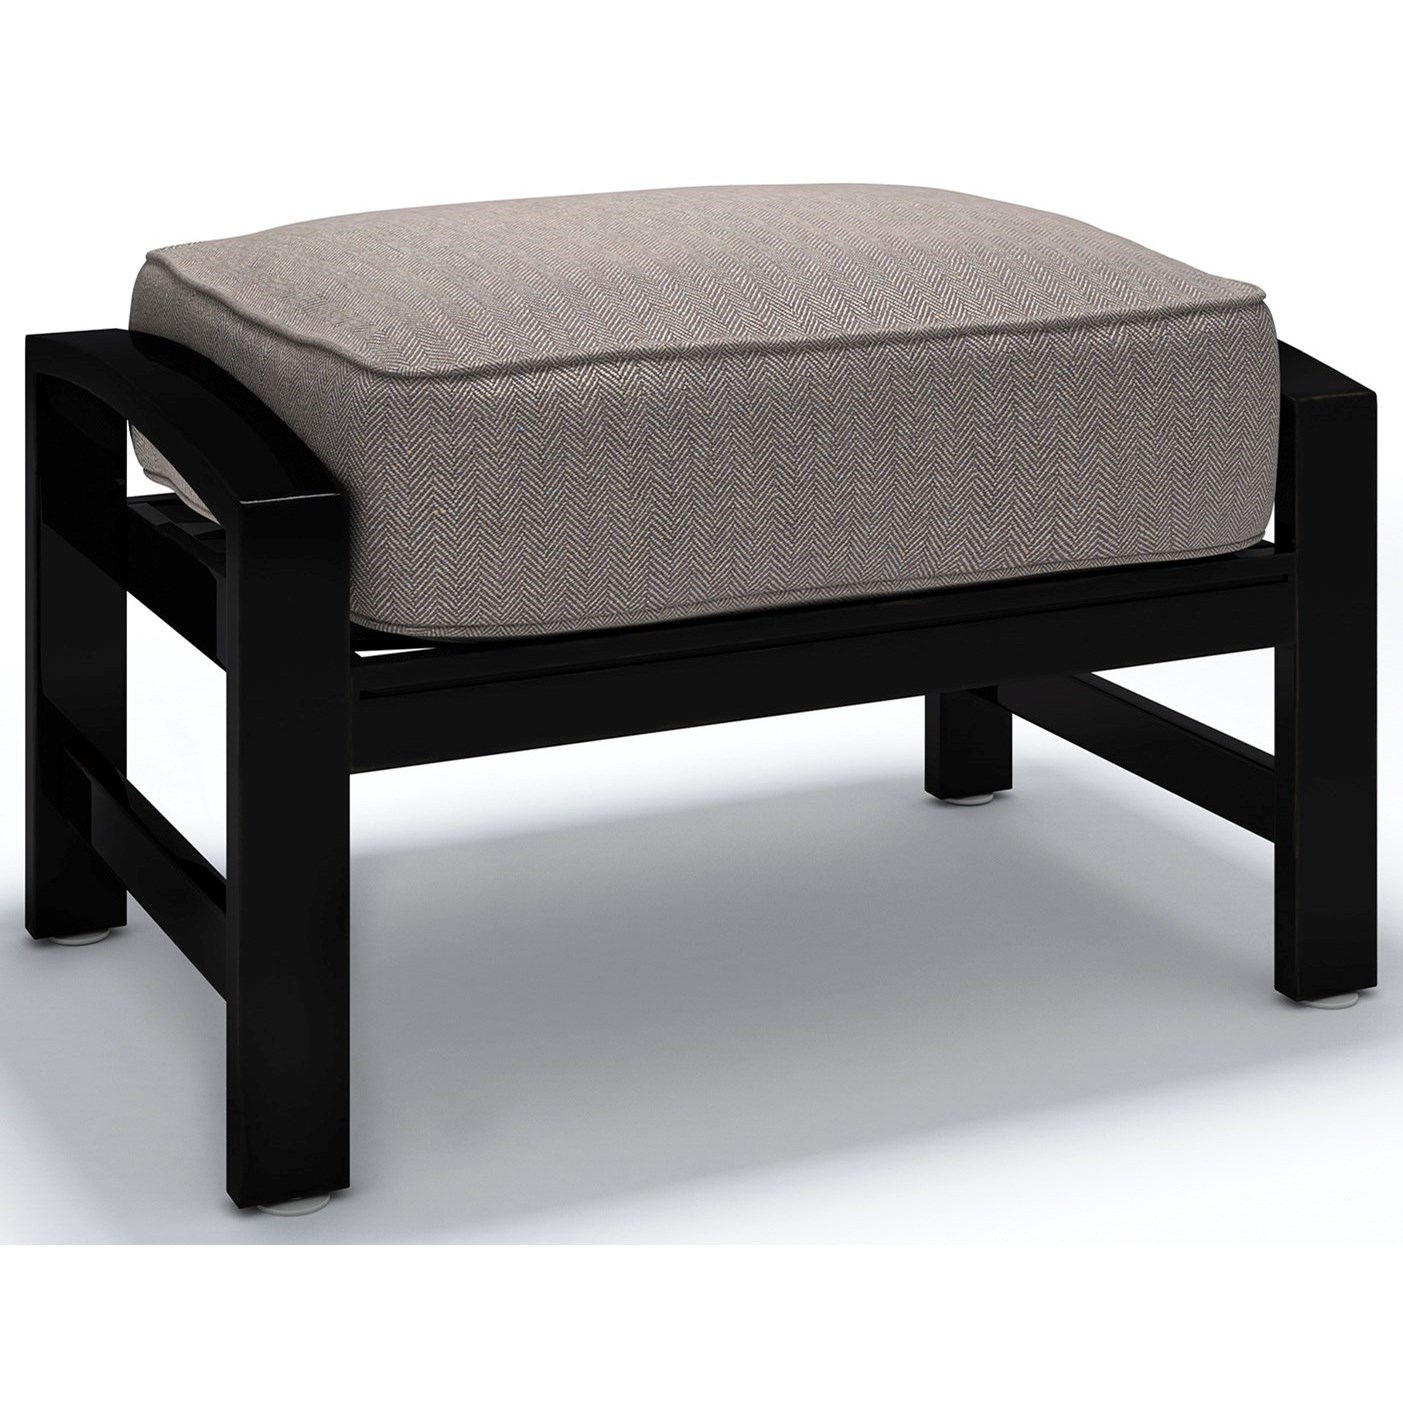 Signature Design by Ashley Castle Island Ottoman with Cushion - Item Number: P414-814